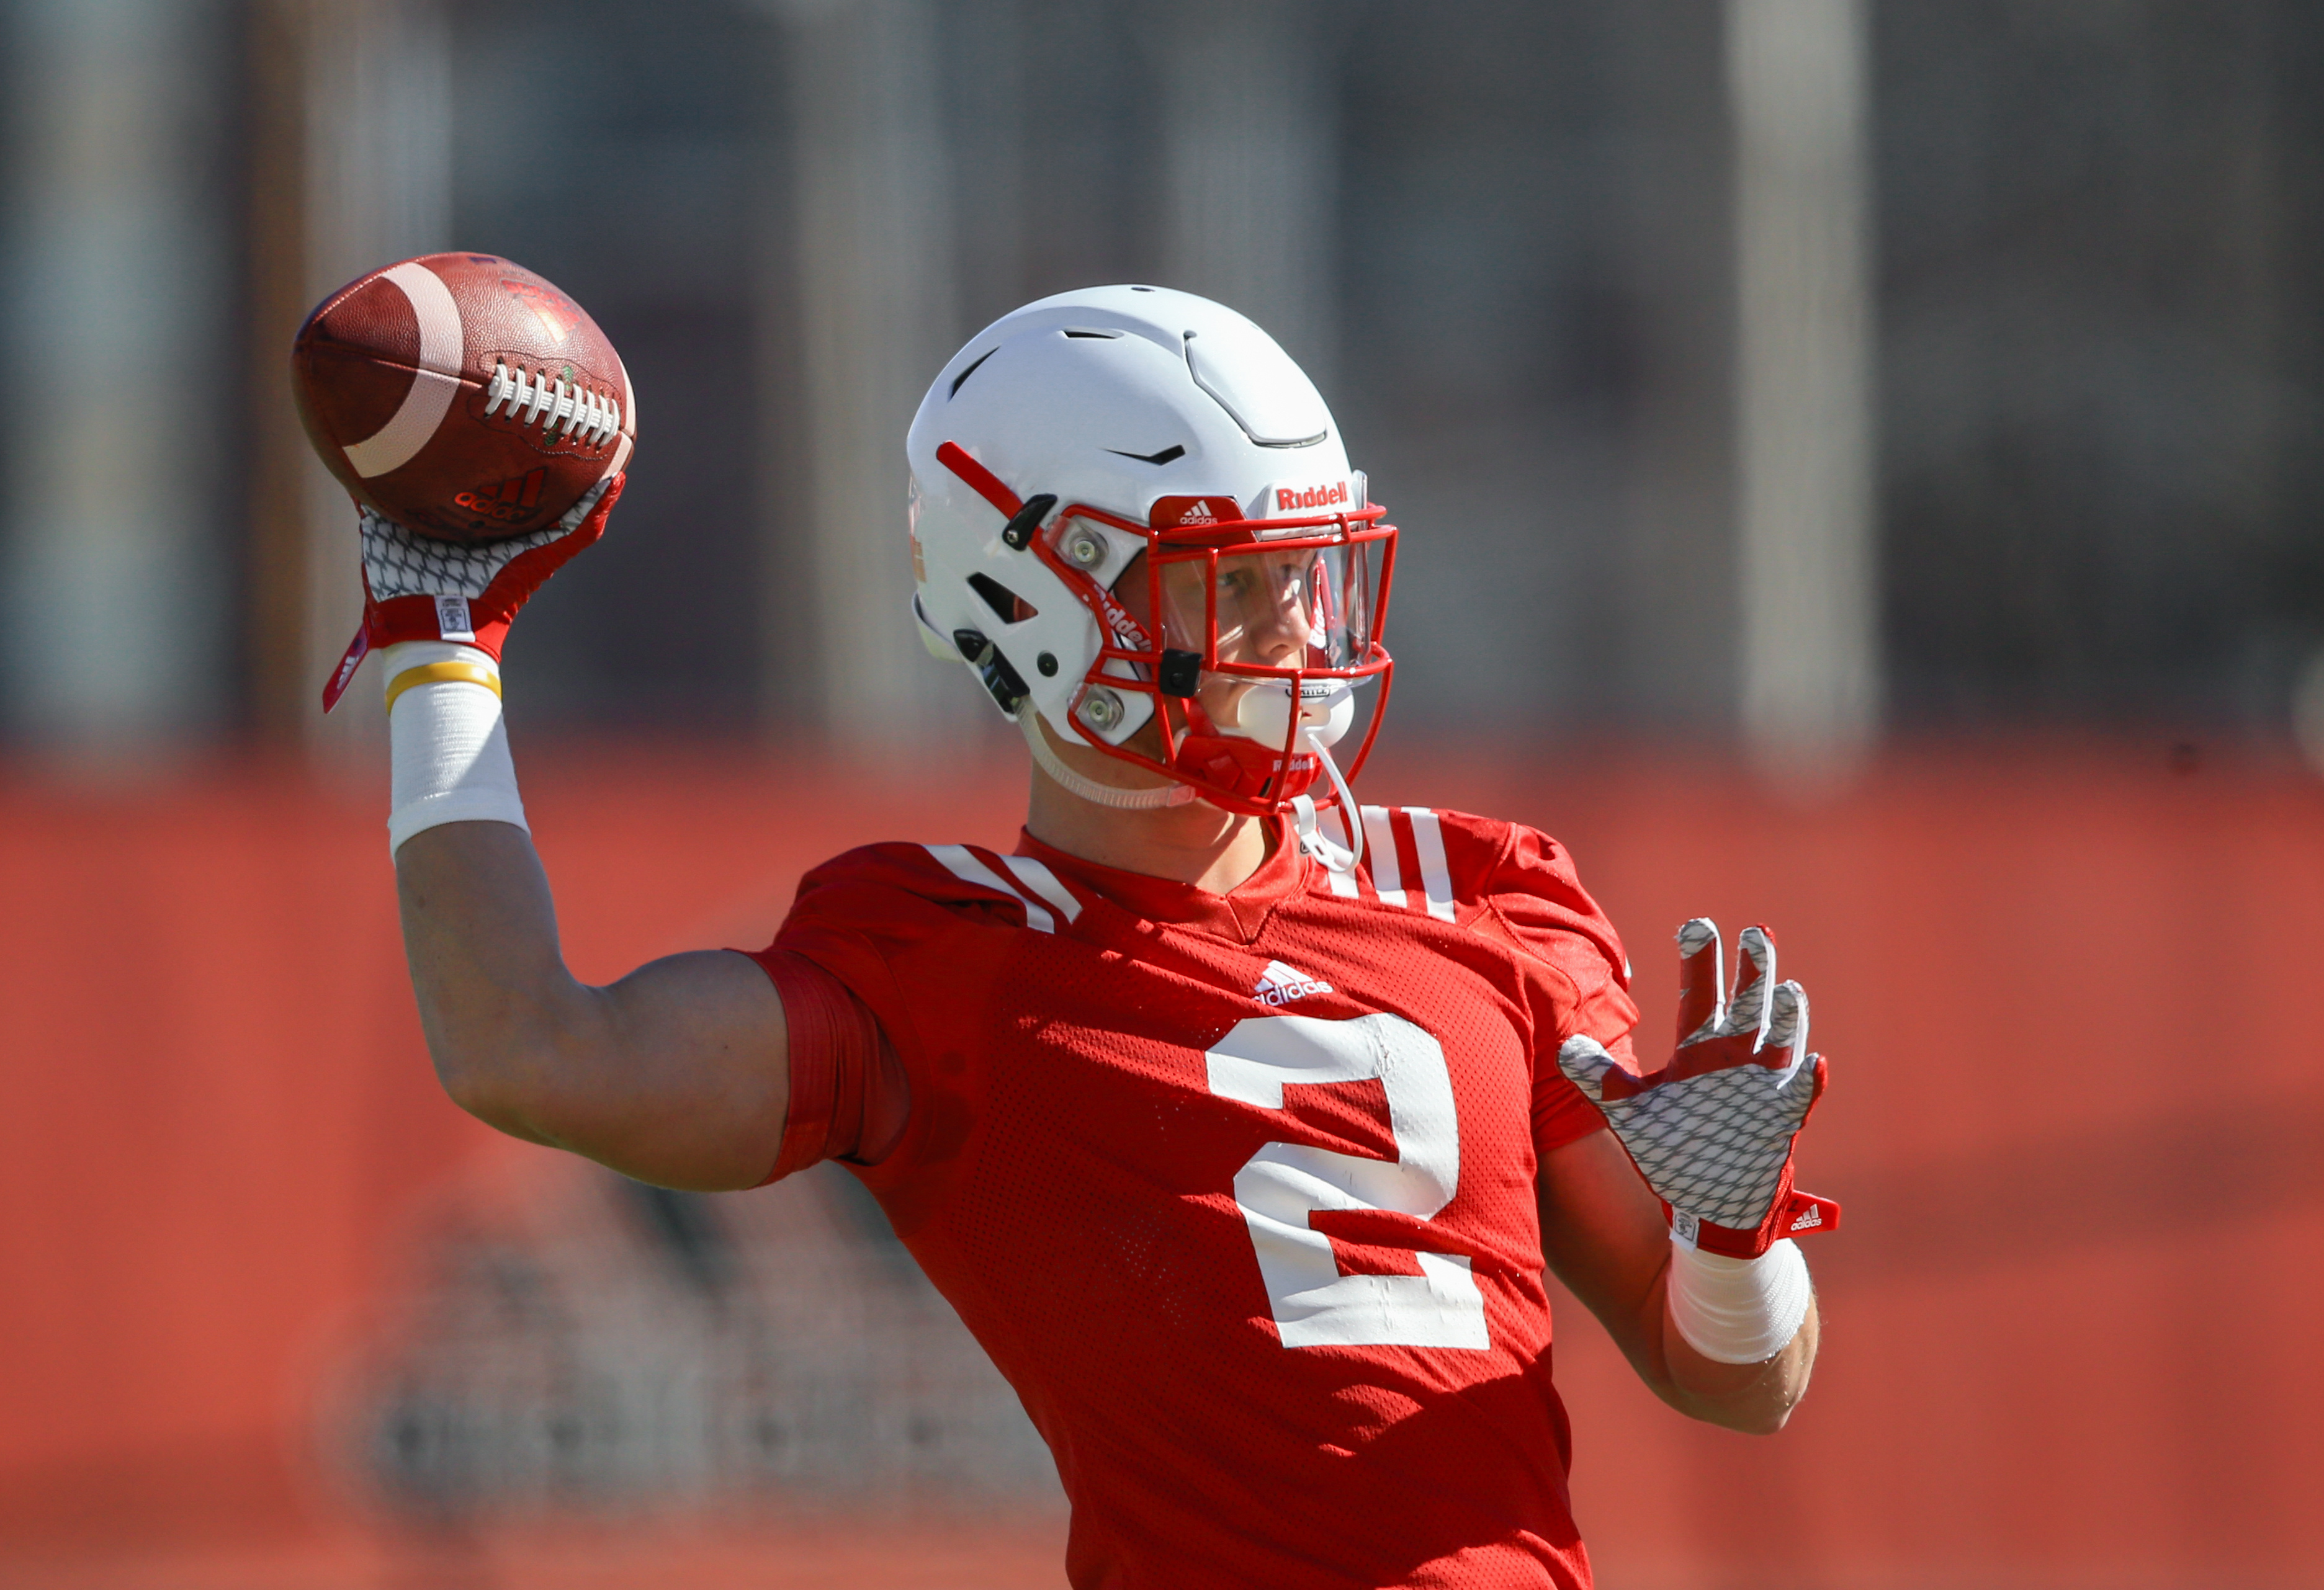 In this March 5, 2016 photo, Nebraska's Zack Darlington (2) throws on the first day of NCAA college football spring practice in Lincoln, Neb. His quarterback days now behind him, he'll go into his fourth practice as a slot receiver on Saturday with only h